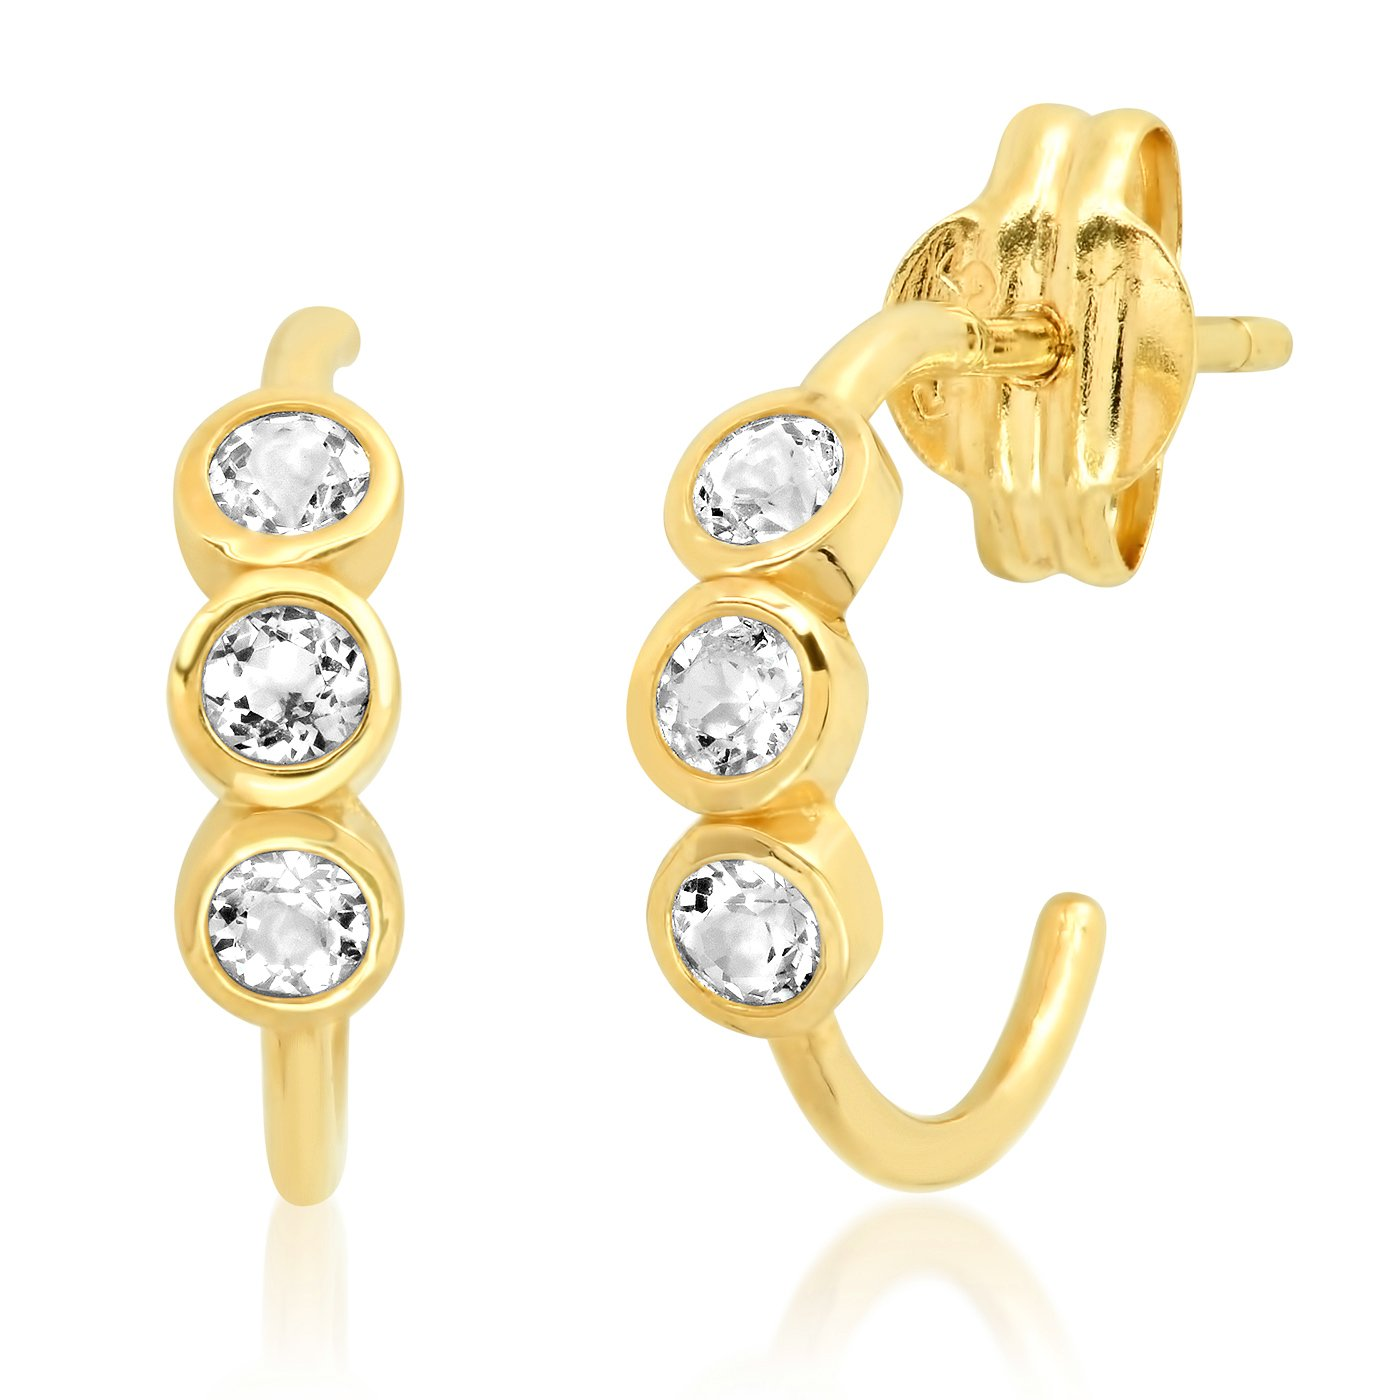 Tai 14k Gold Hoop Earrings With White Topaz Accents